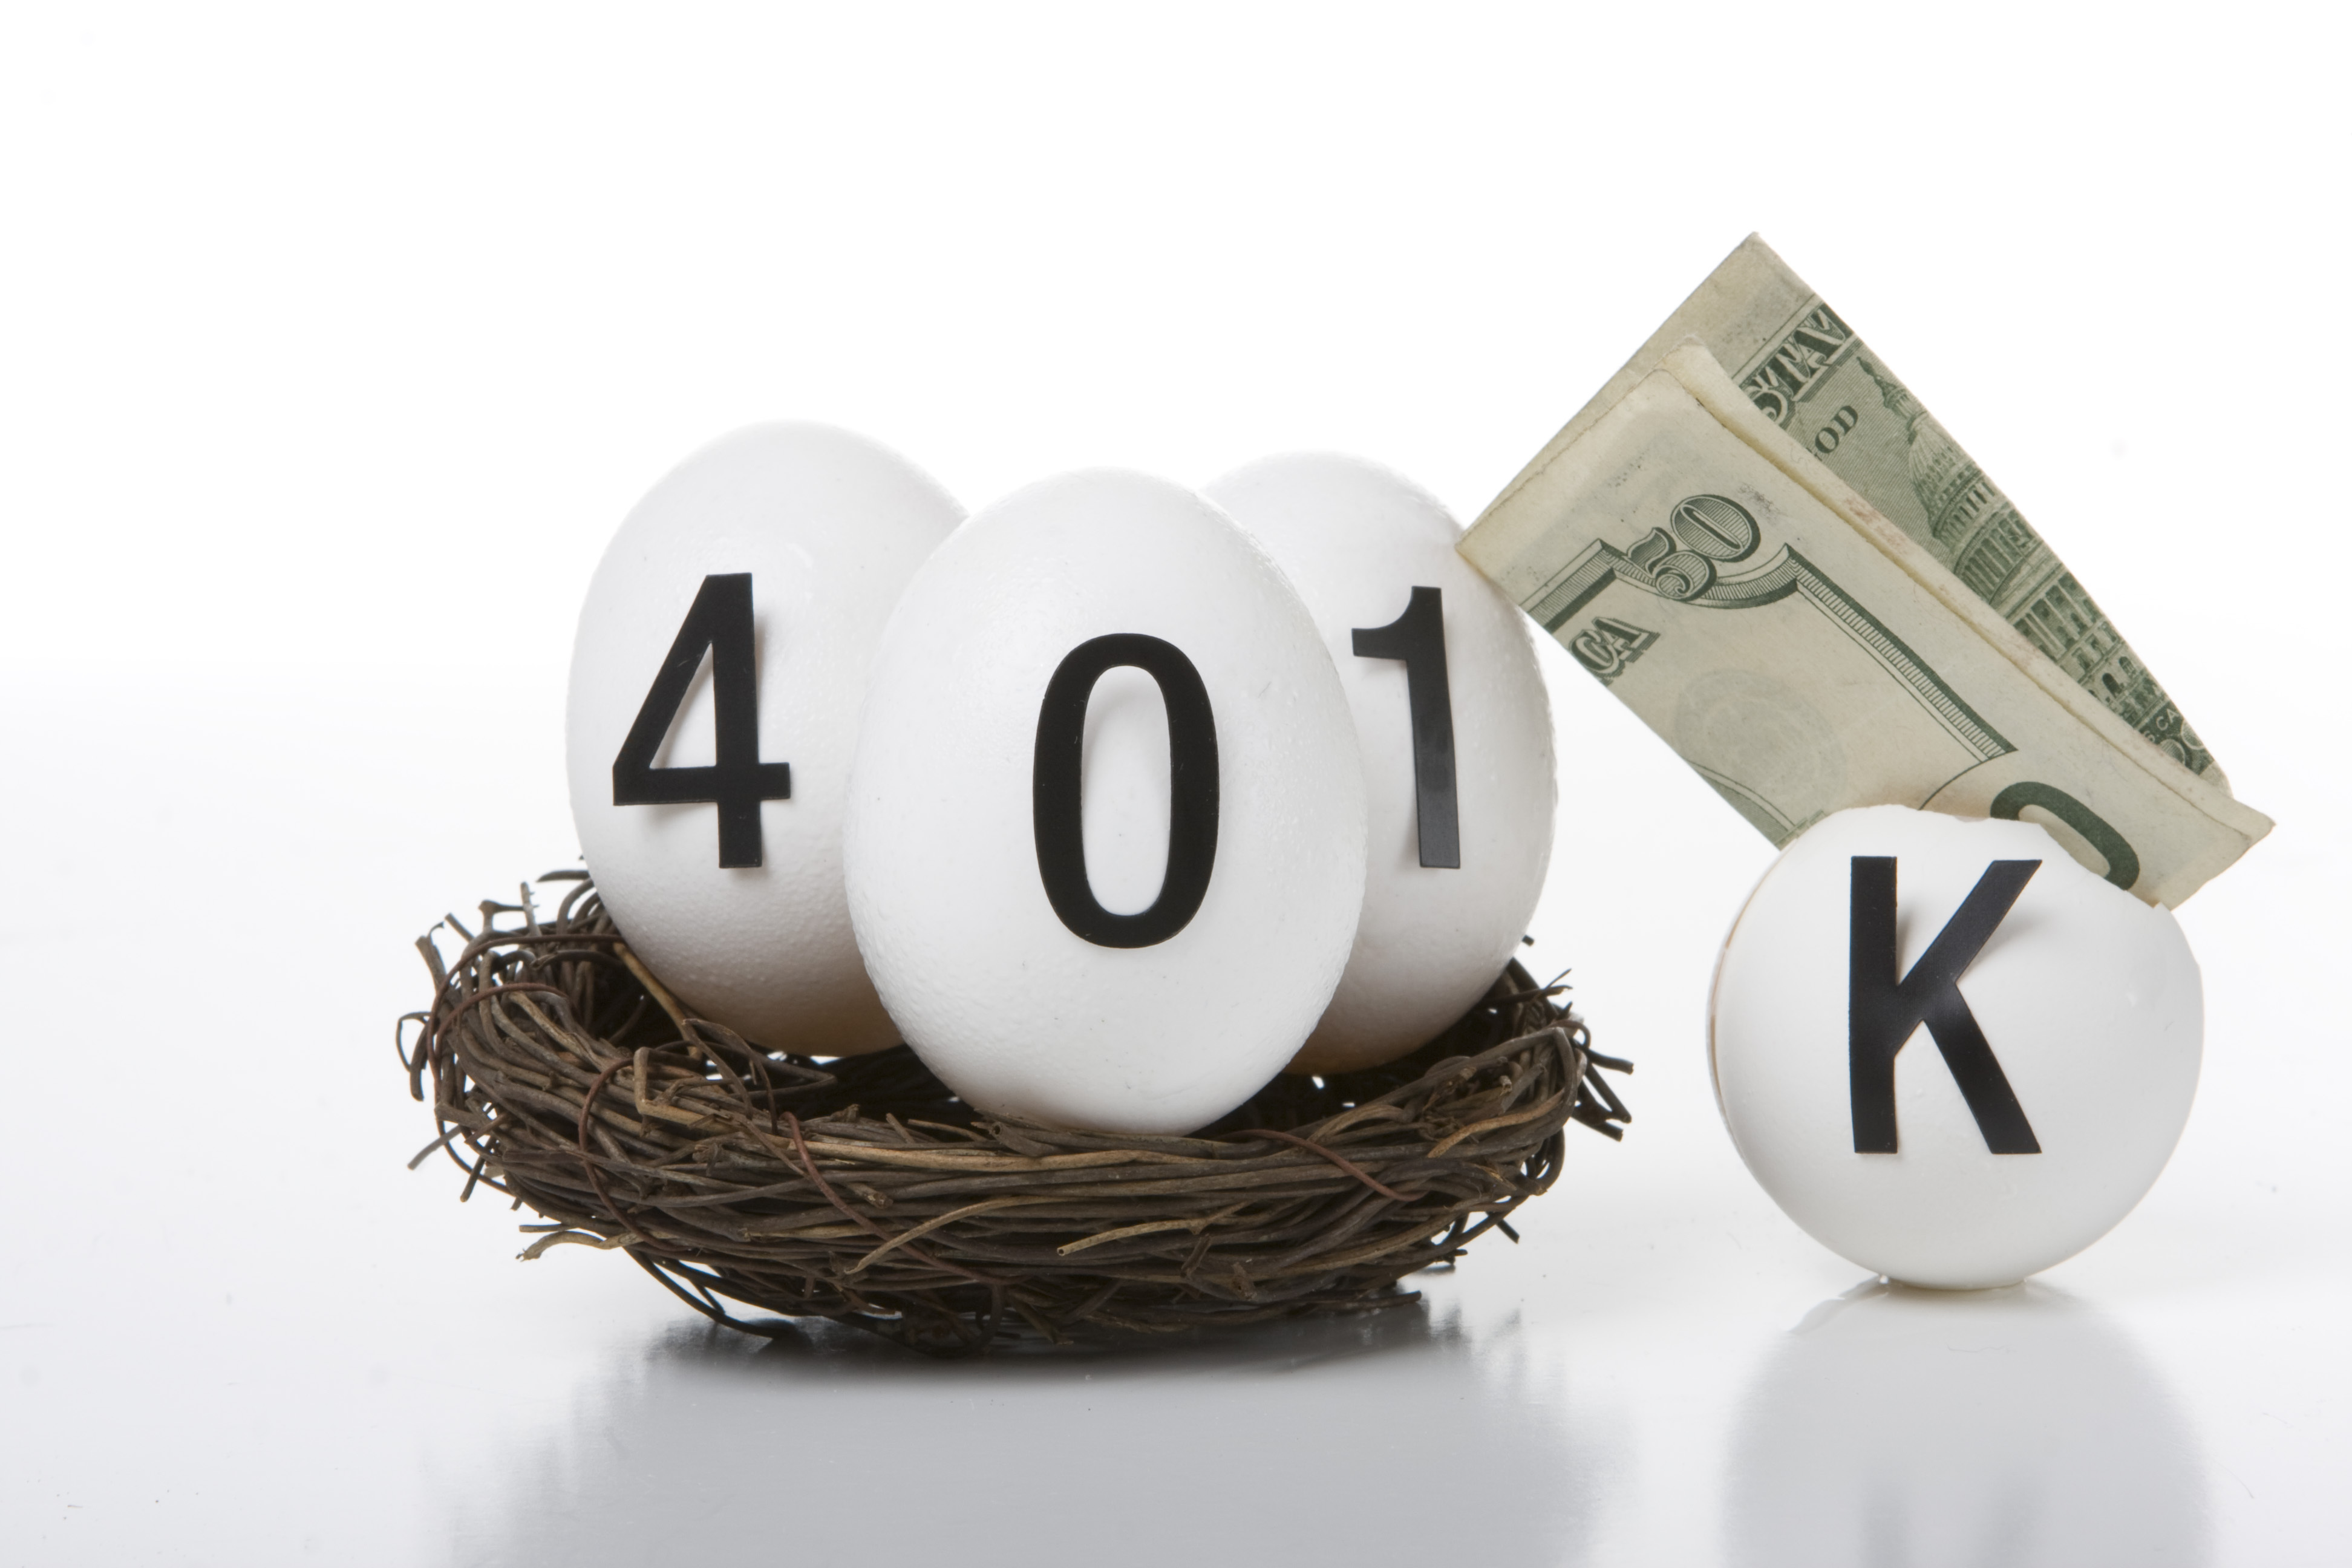 401k Tricks: Backdoor Roth IRA Contributions